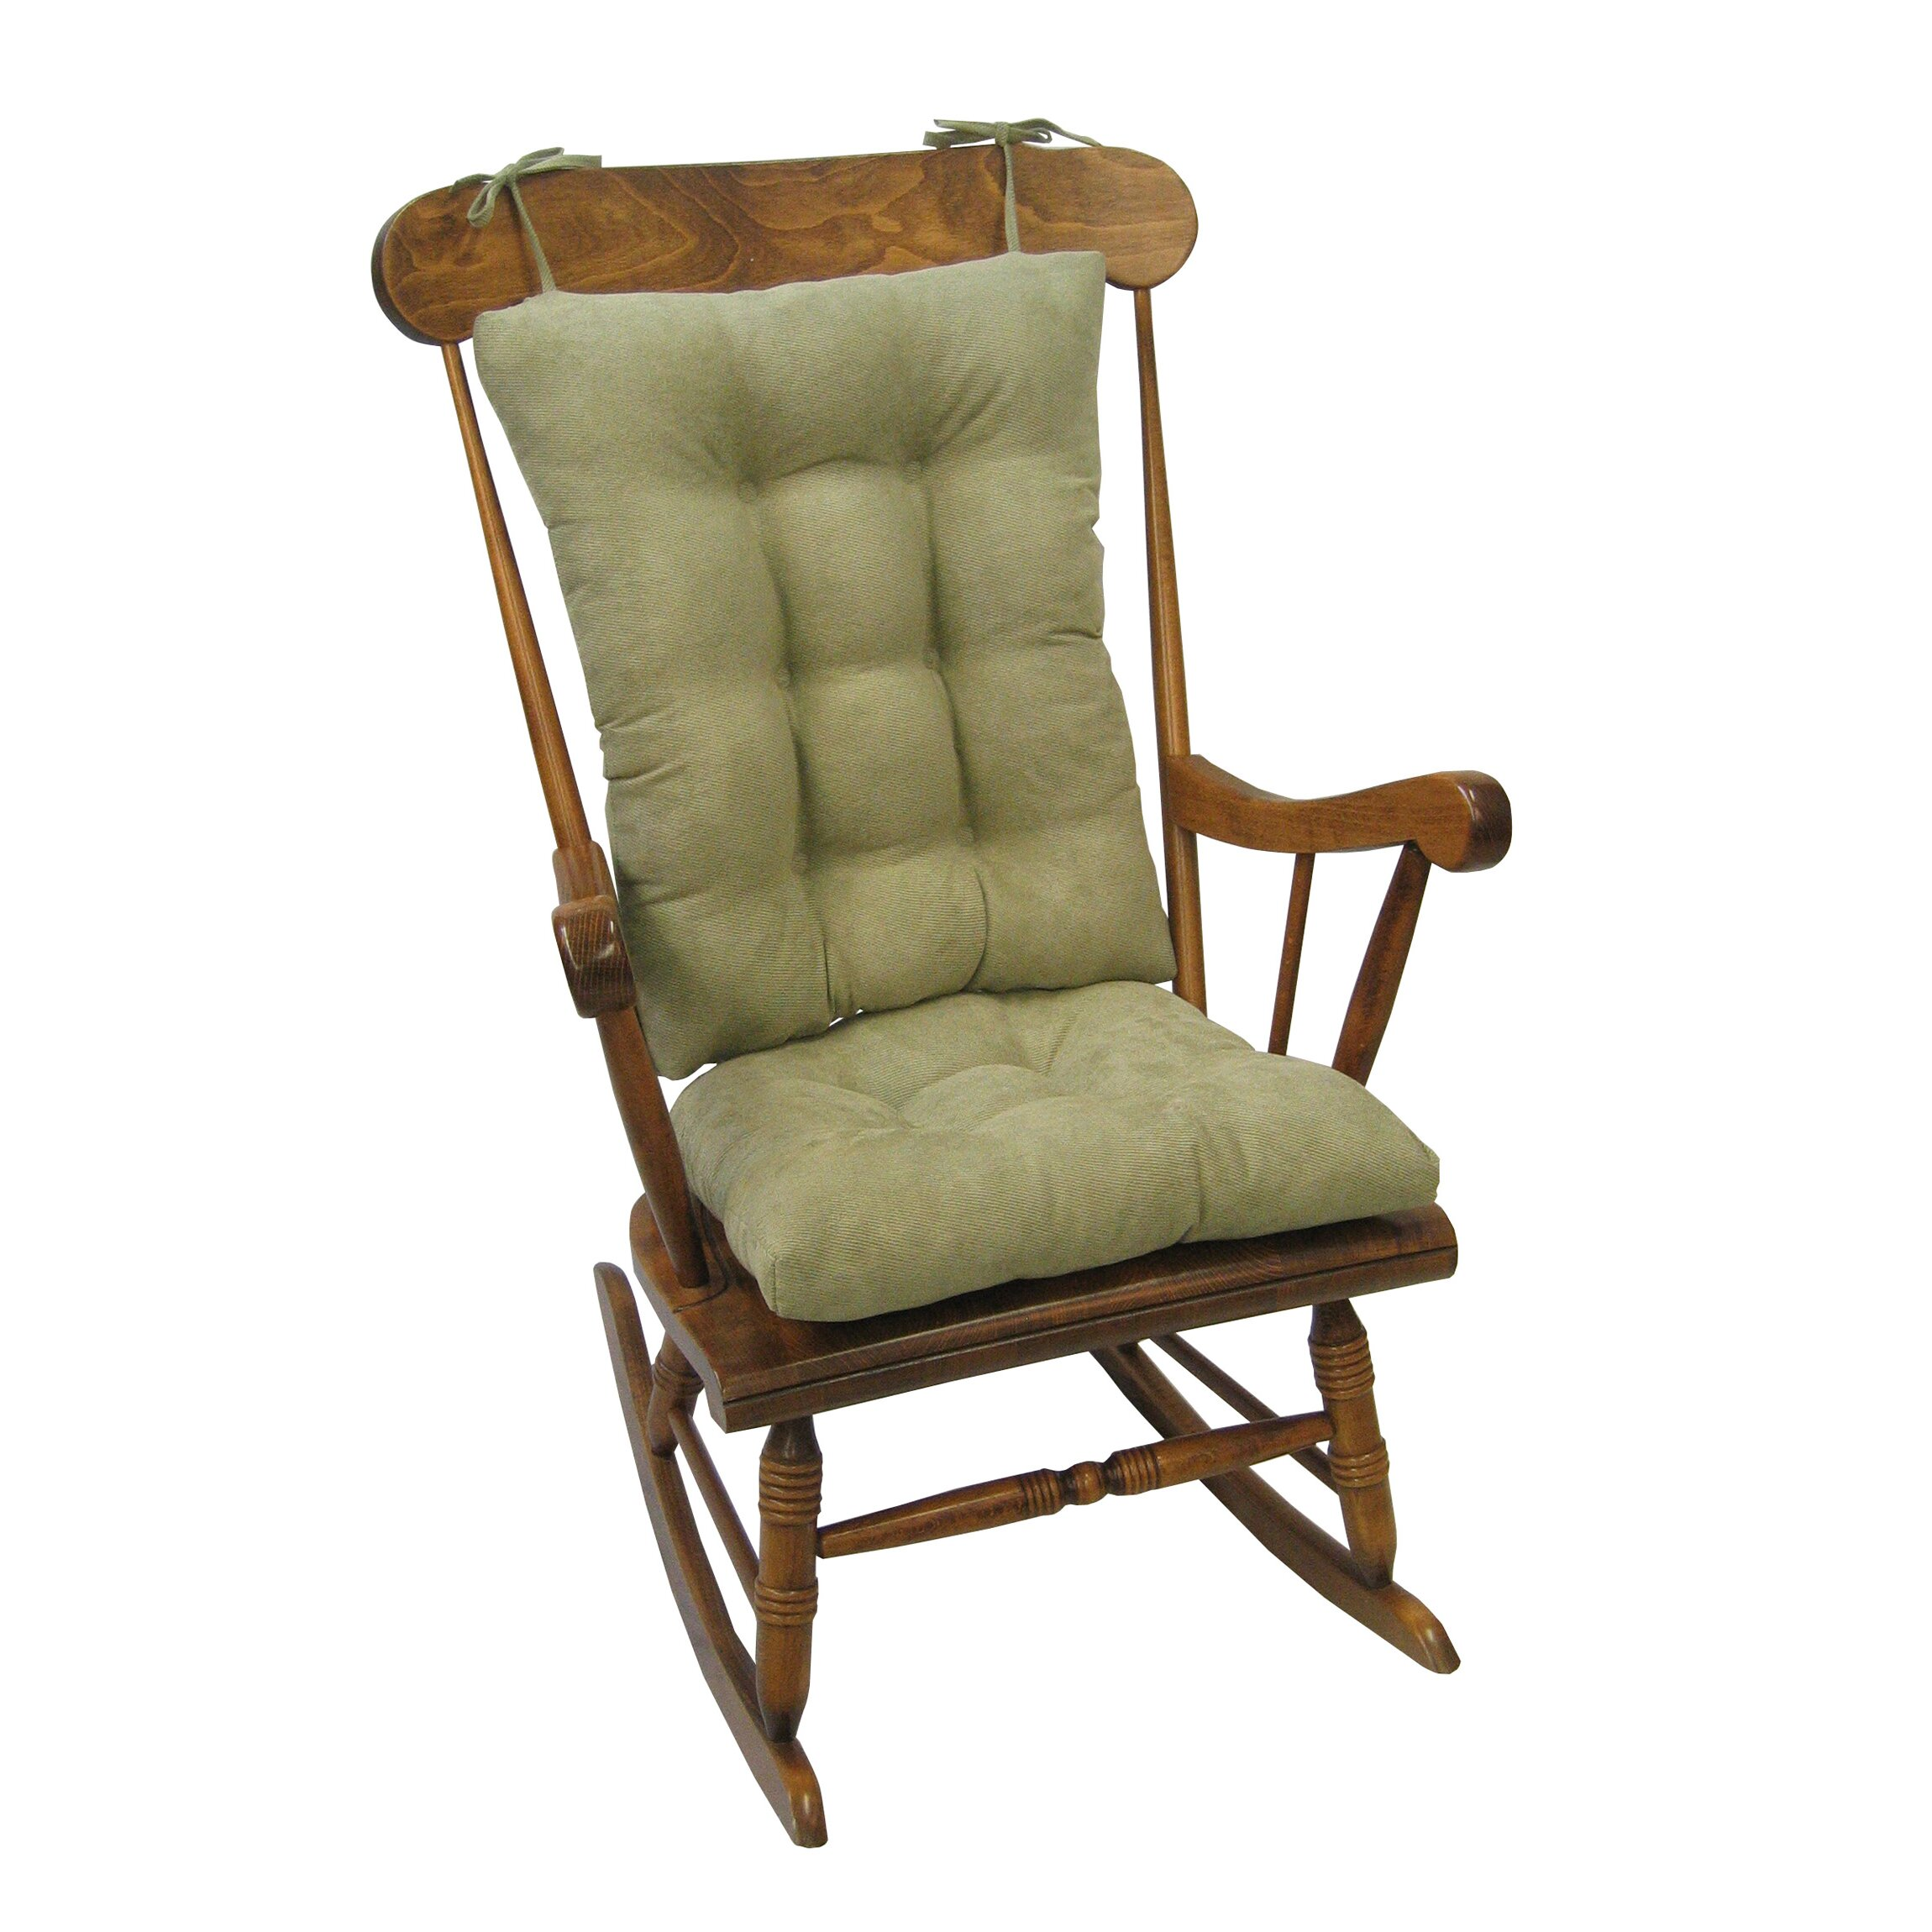 Rocking Chair Cushion WFBS1300 WFBS1300 in addition Chelsea Clarissa Serta Kelsey 3 Piece Living Room Set Home In Carmel likewise Seat Cushions For Chairs To Add Some Style And Make Your Chairs More  fortable as well 370792733135 likewise Polywood Rocking Chair Seat Cushions. on rocker cushions sets